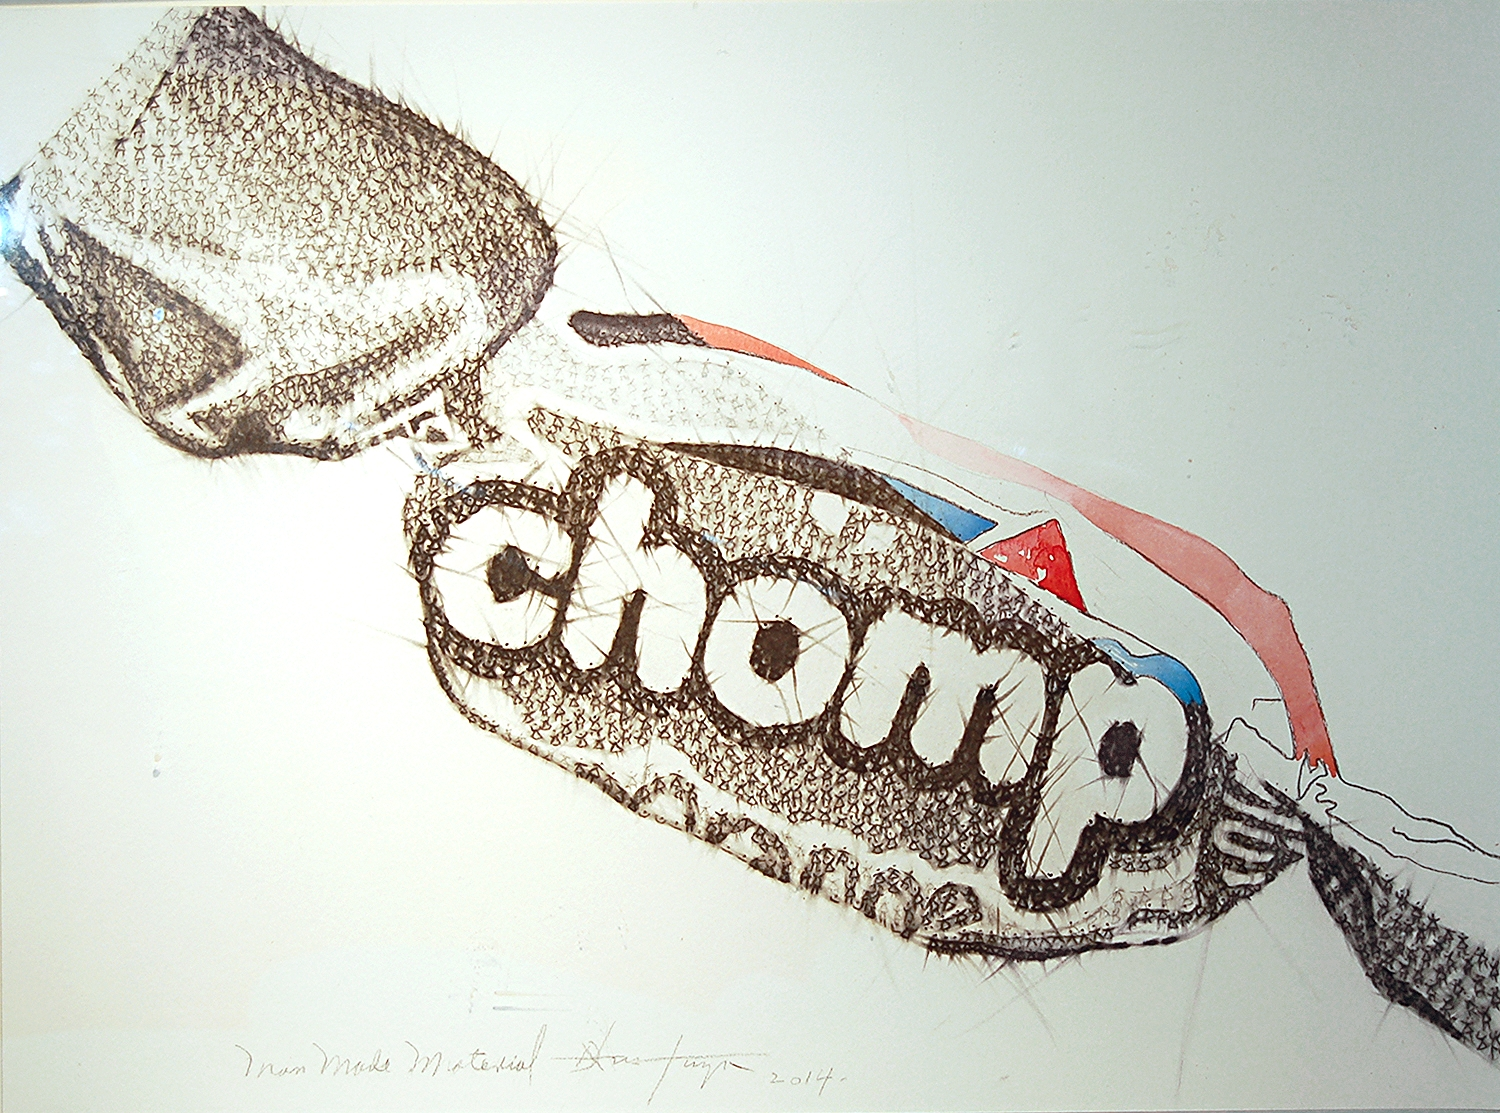 Man Made Material Series #2 (Chomp), Charcoal and Watercolour on Paper, 2014, 61cm x 45cm